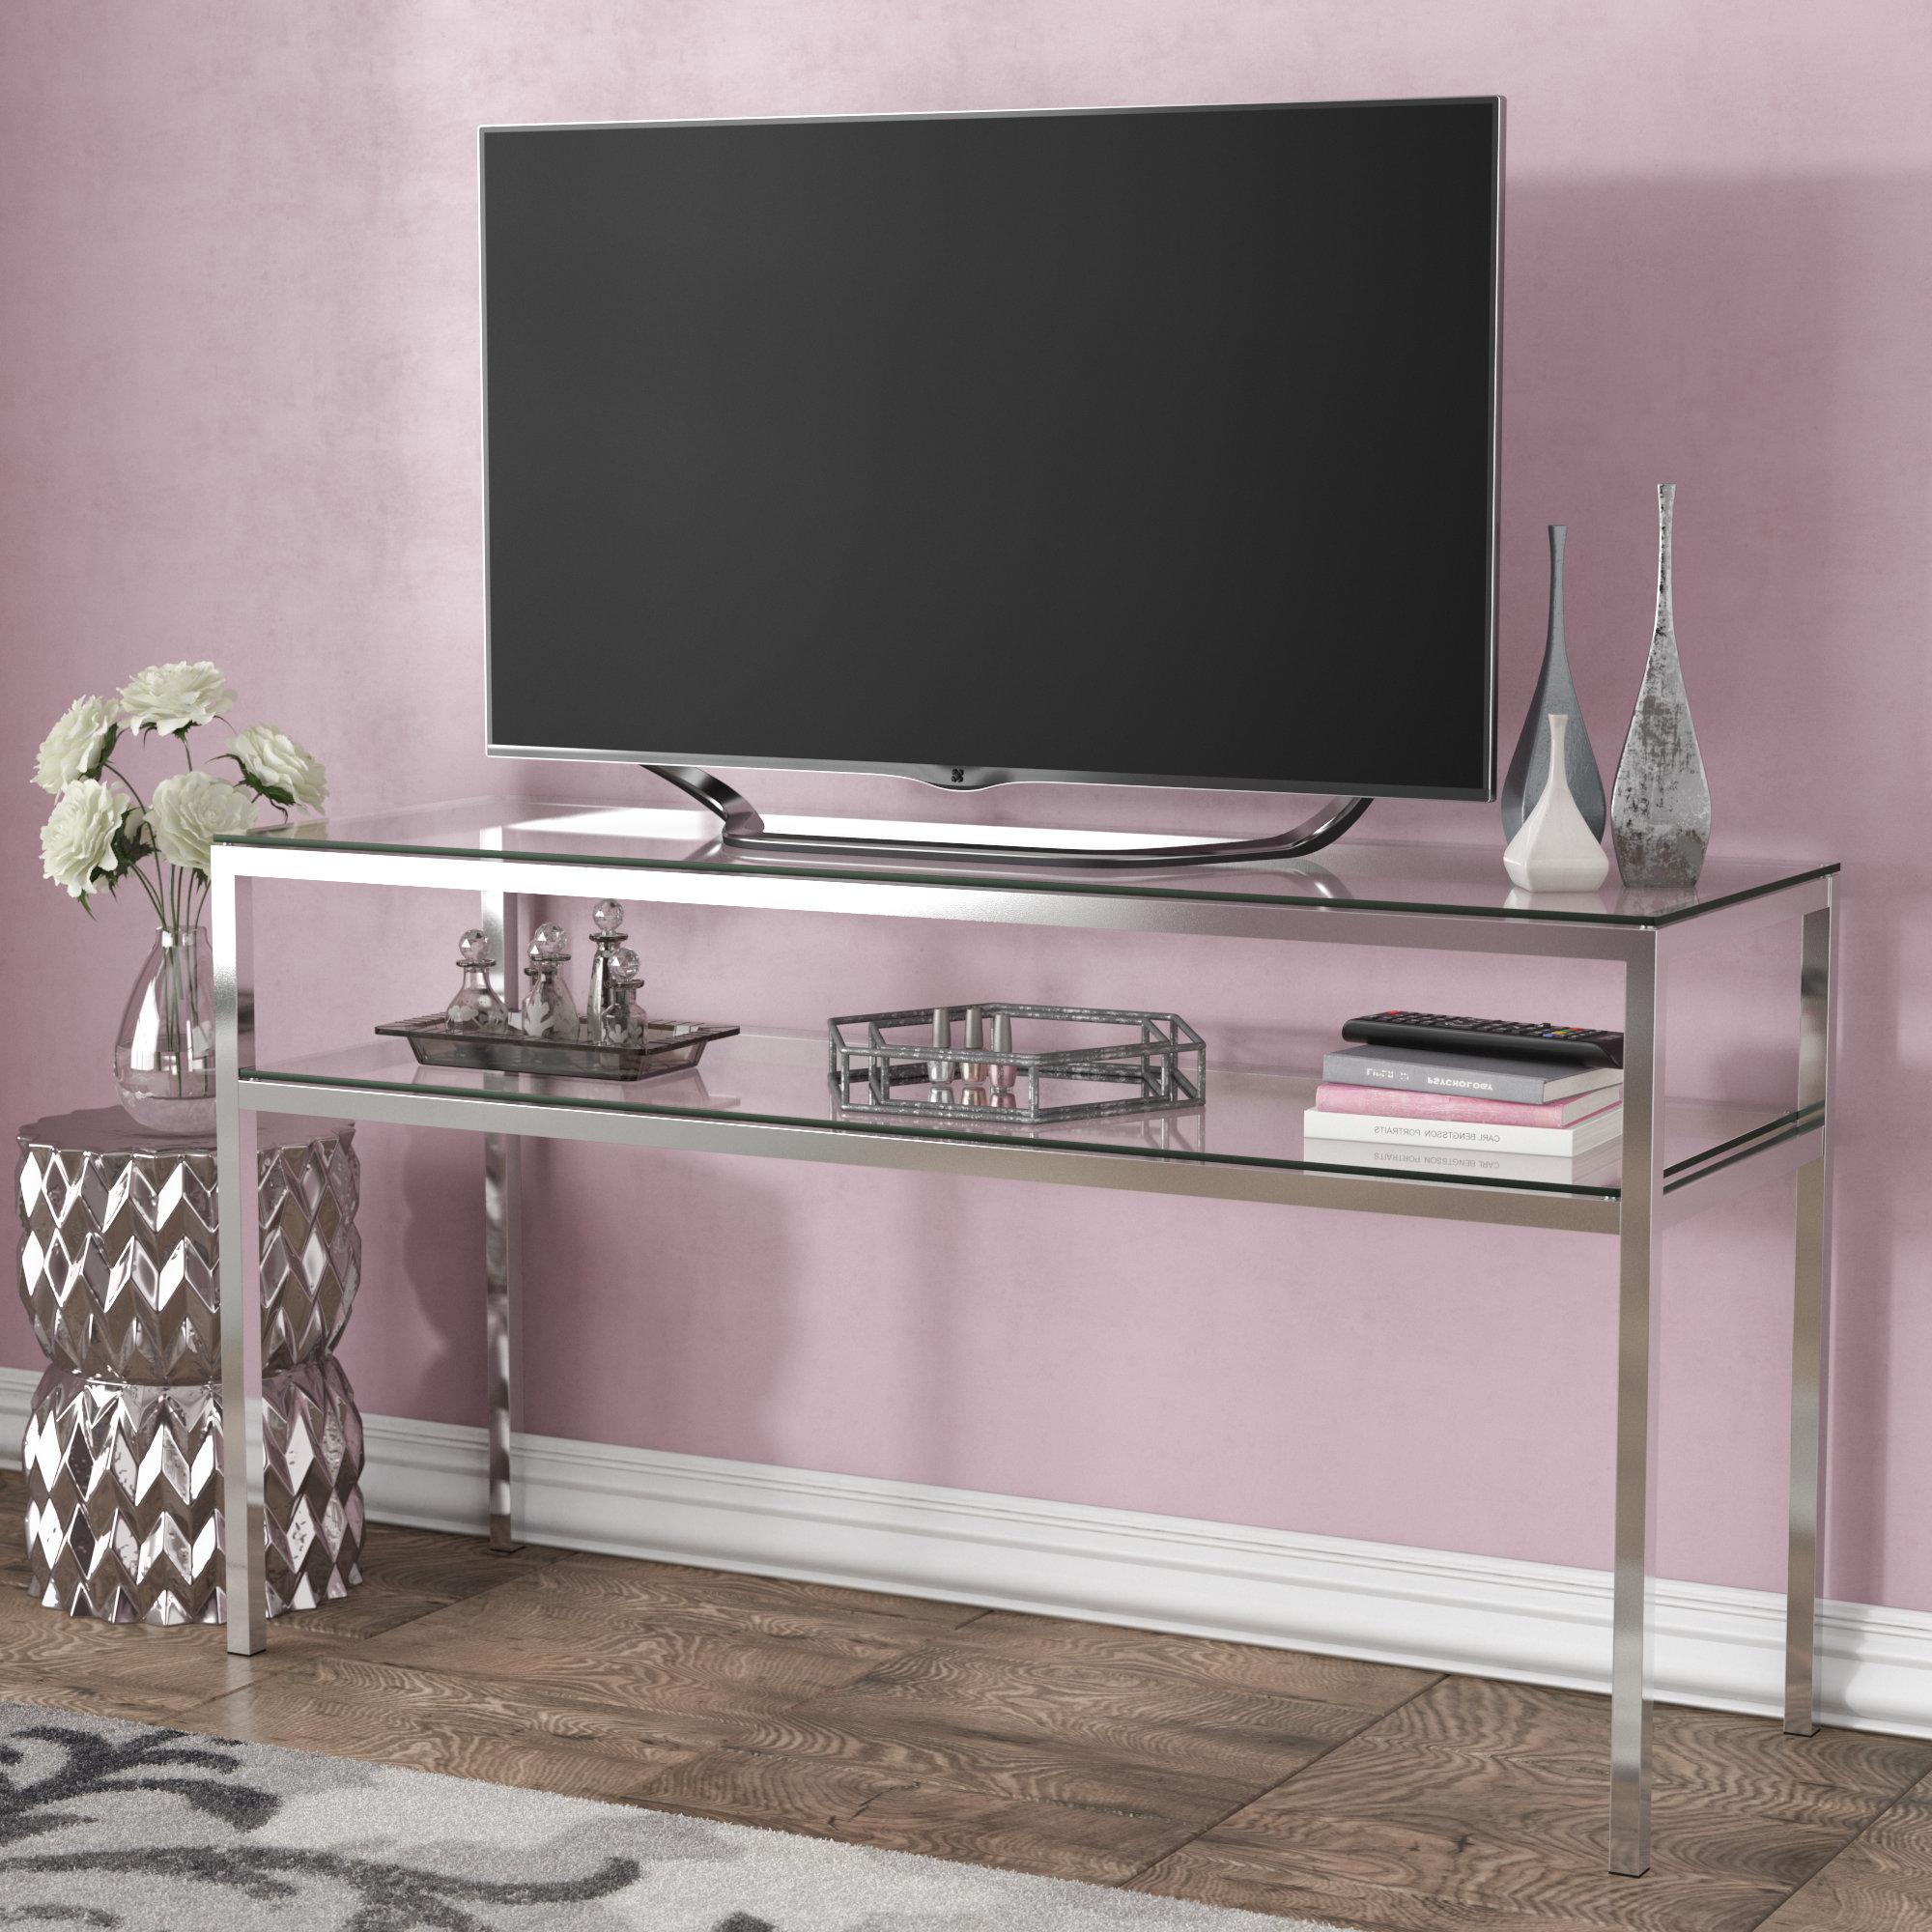 60 69 Inch Tv Stands You'll Love | Wayfair (View 3 of 20)